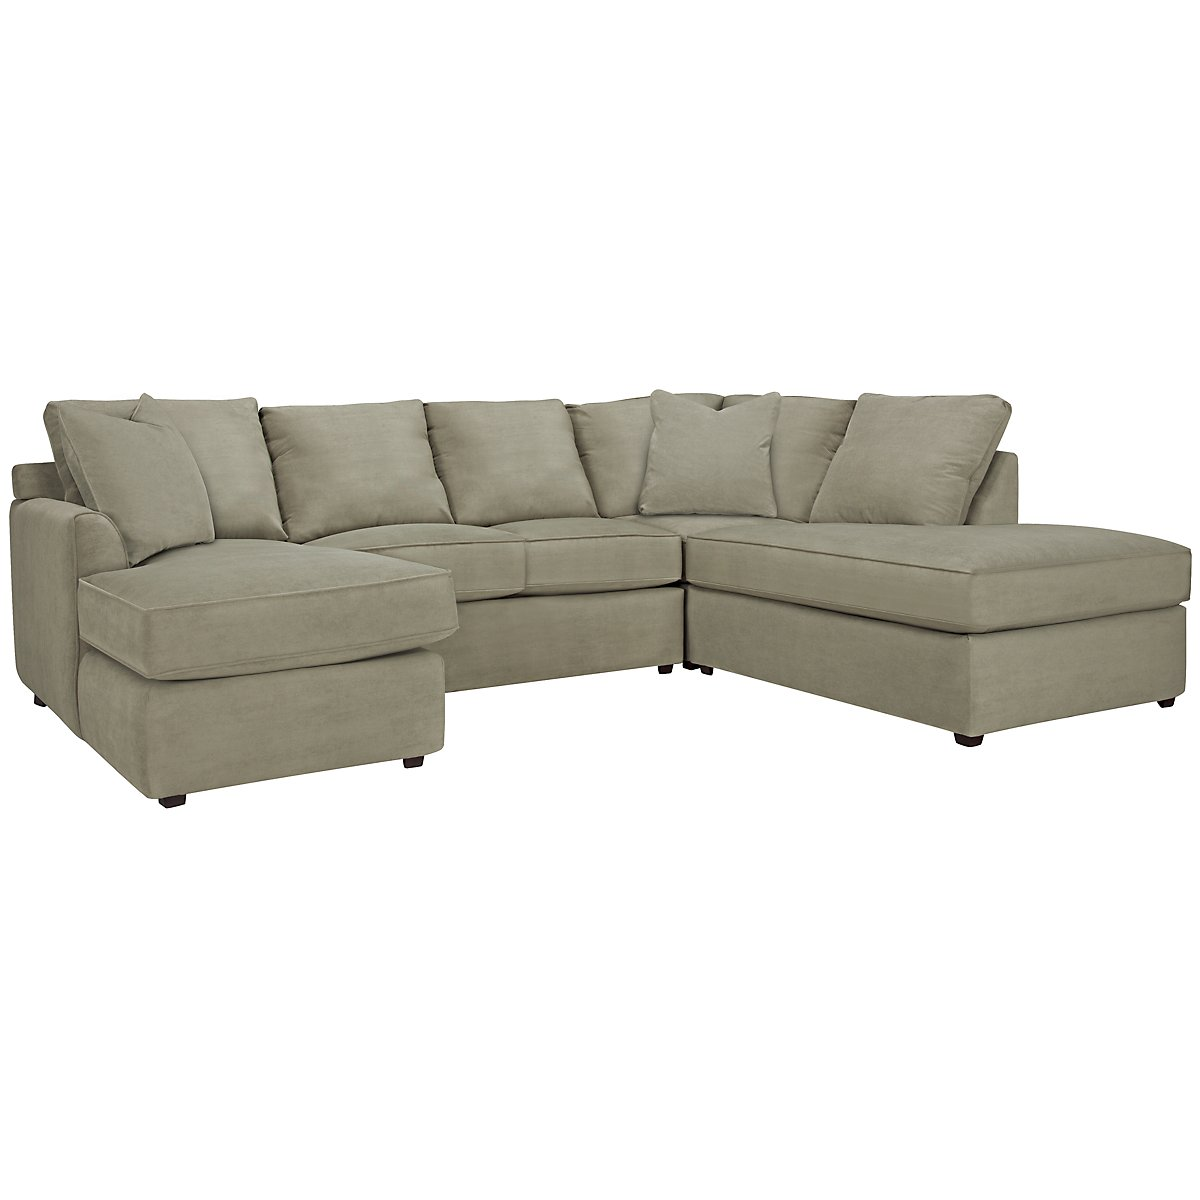 Express3 Light Green Microfiber Small Right Bumper Sectional